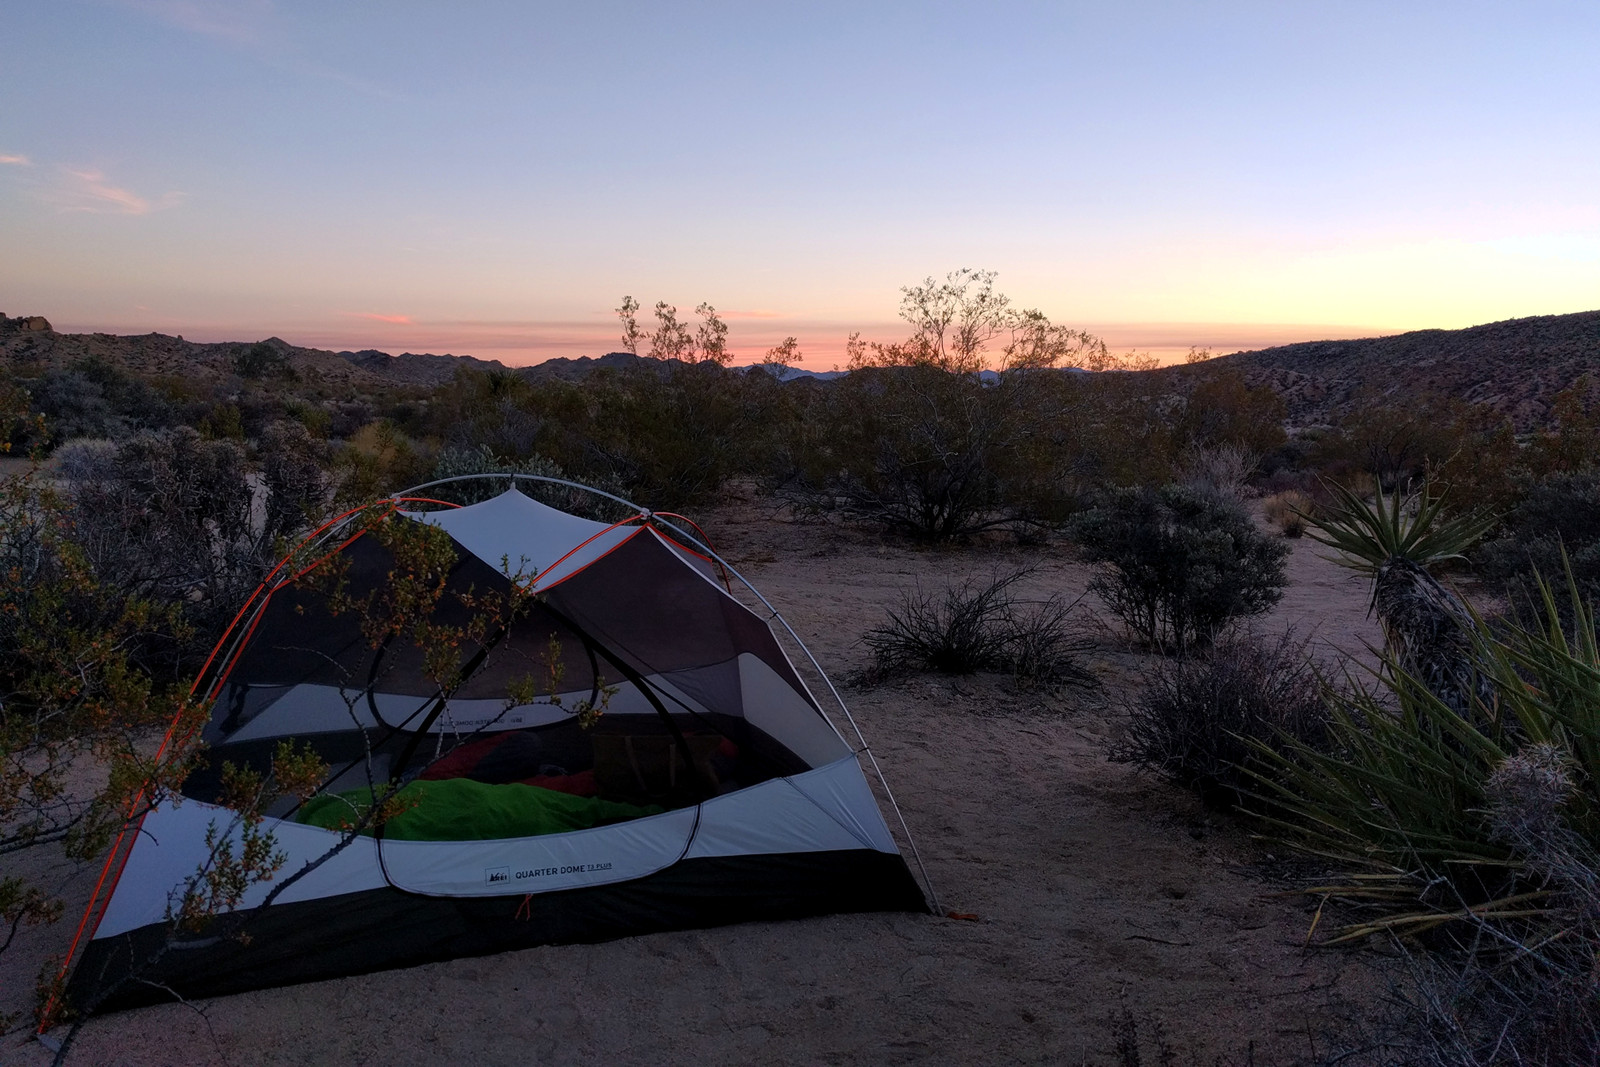 Our campsite at Cottonwood Campground in Joshua Tree National Park at sunset